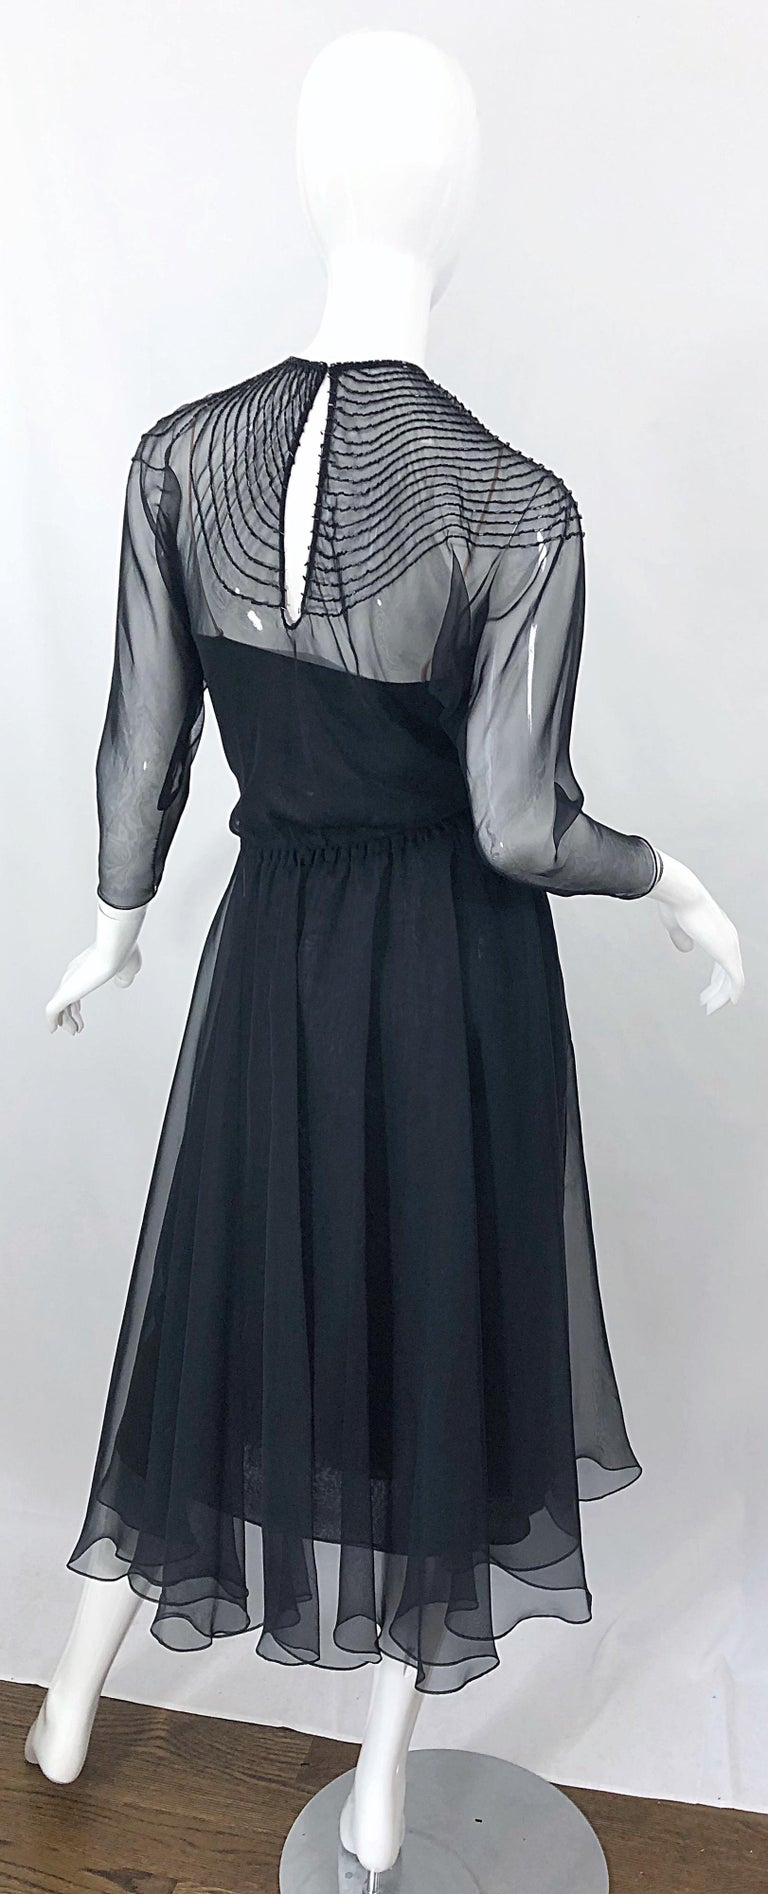 Exceptional vintage 70s HALSTON Couture black silk chiffon beaded dress and sash belt or head scarf! Features a separate black silk chiffon slip with three layers of chiffon and nude straps. The slip could actually be worn as a dress by itself.